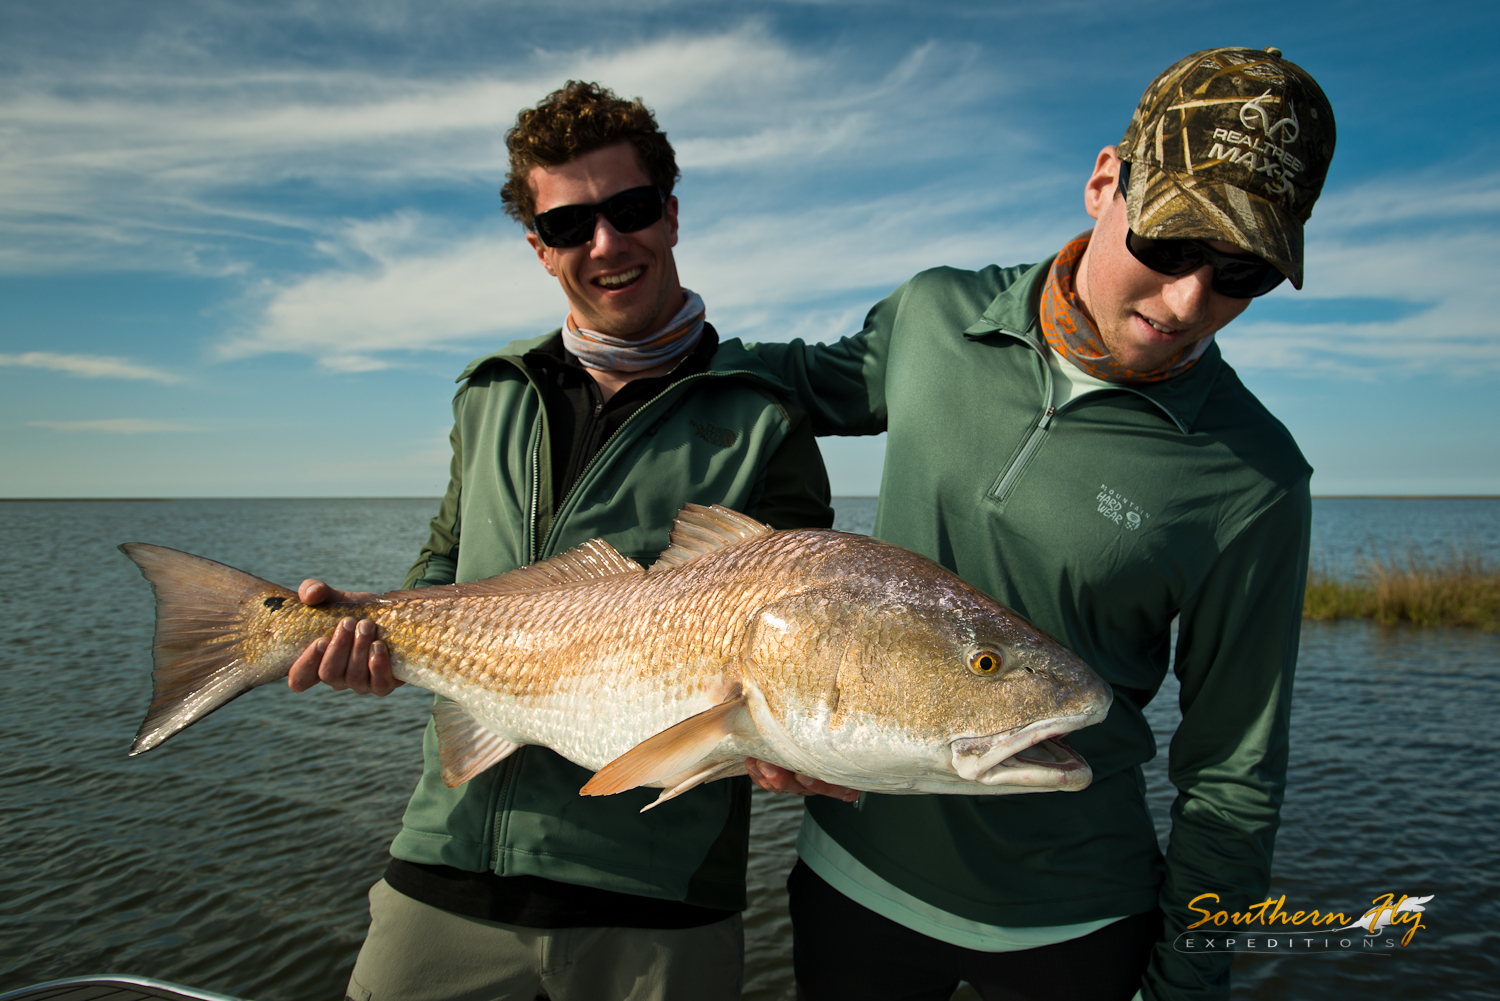 fishing louisiana and fly fishing new orleans things to do on a bachelor trip to new orleans with Southern Fly Expeditions